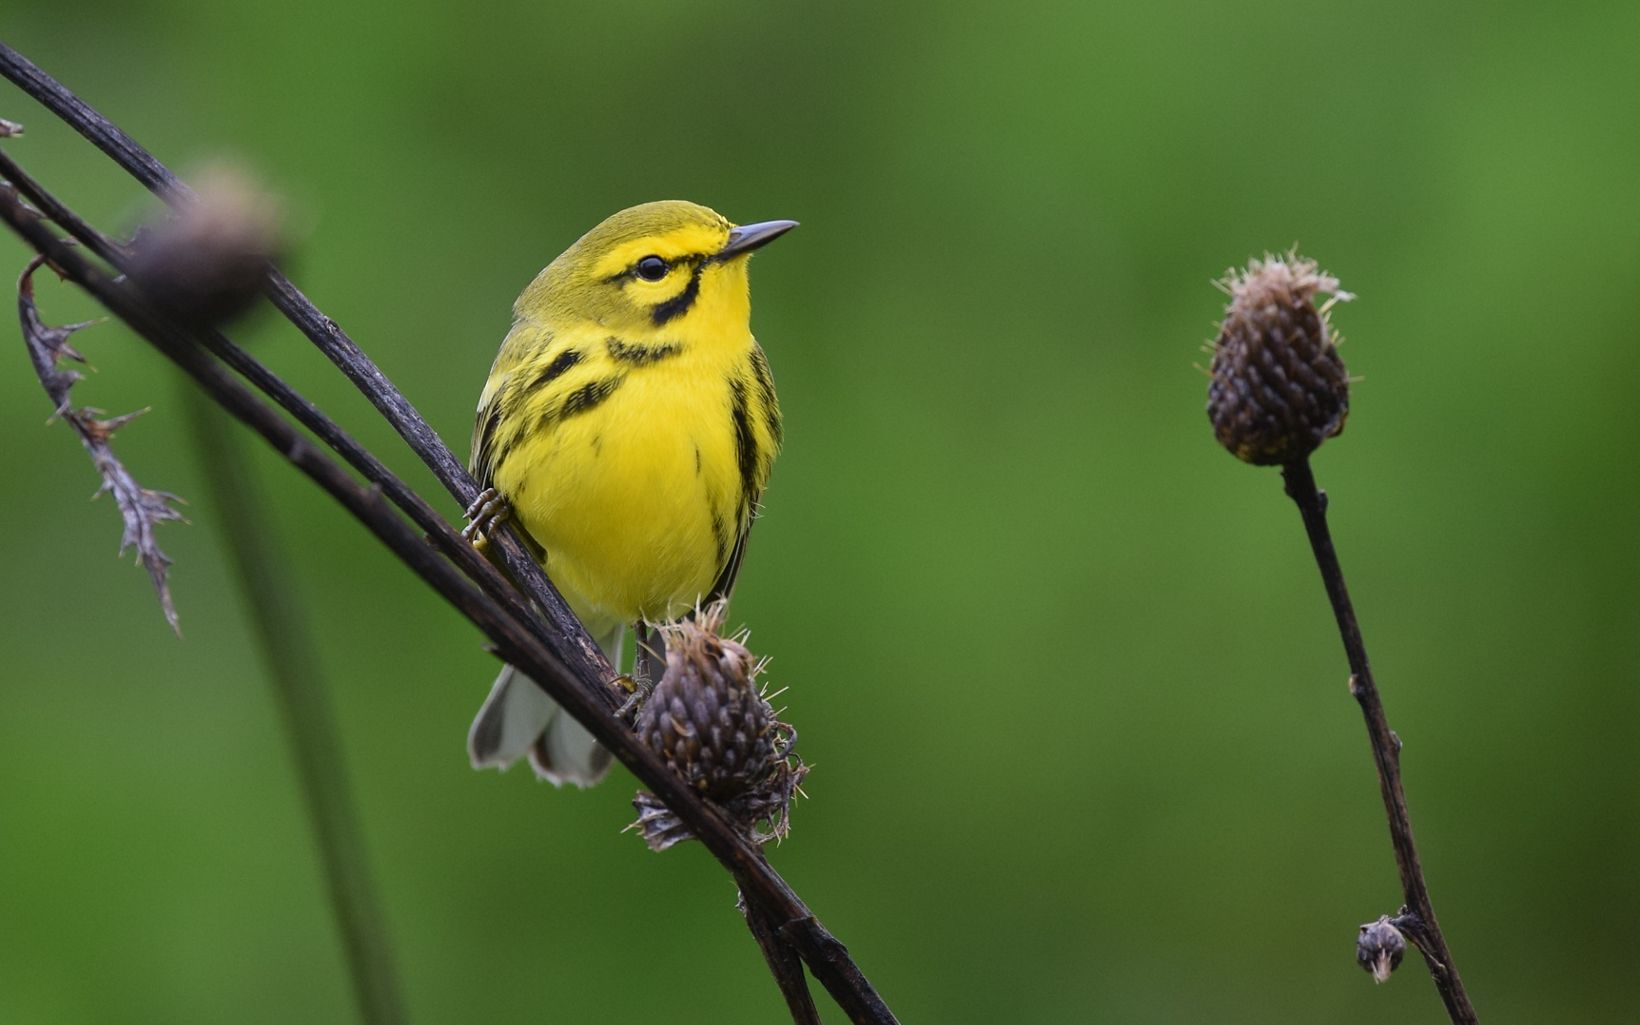 A yellow and black bird rests on a dry stem.